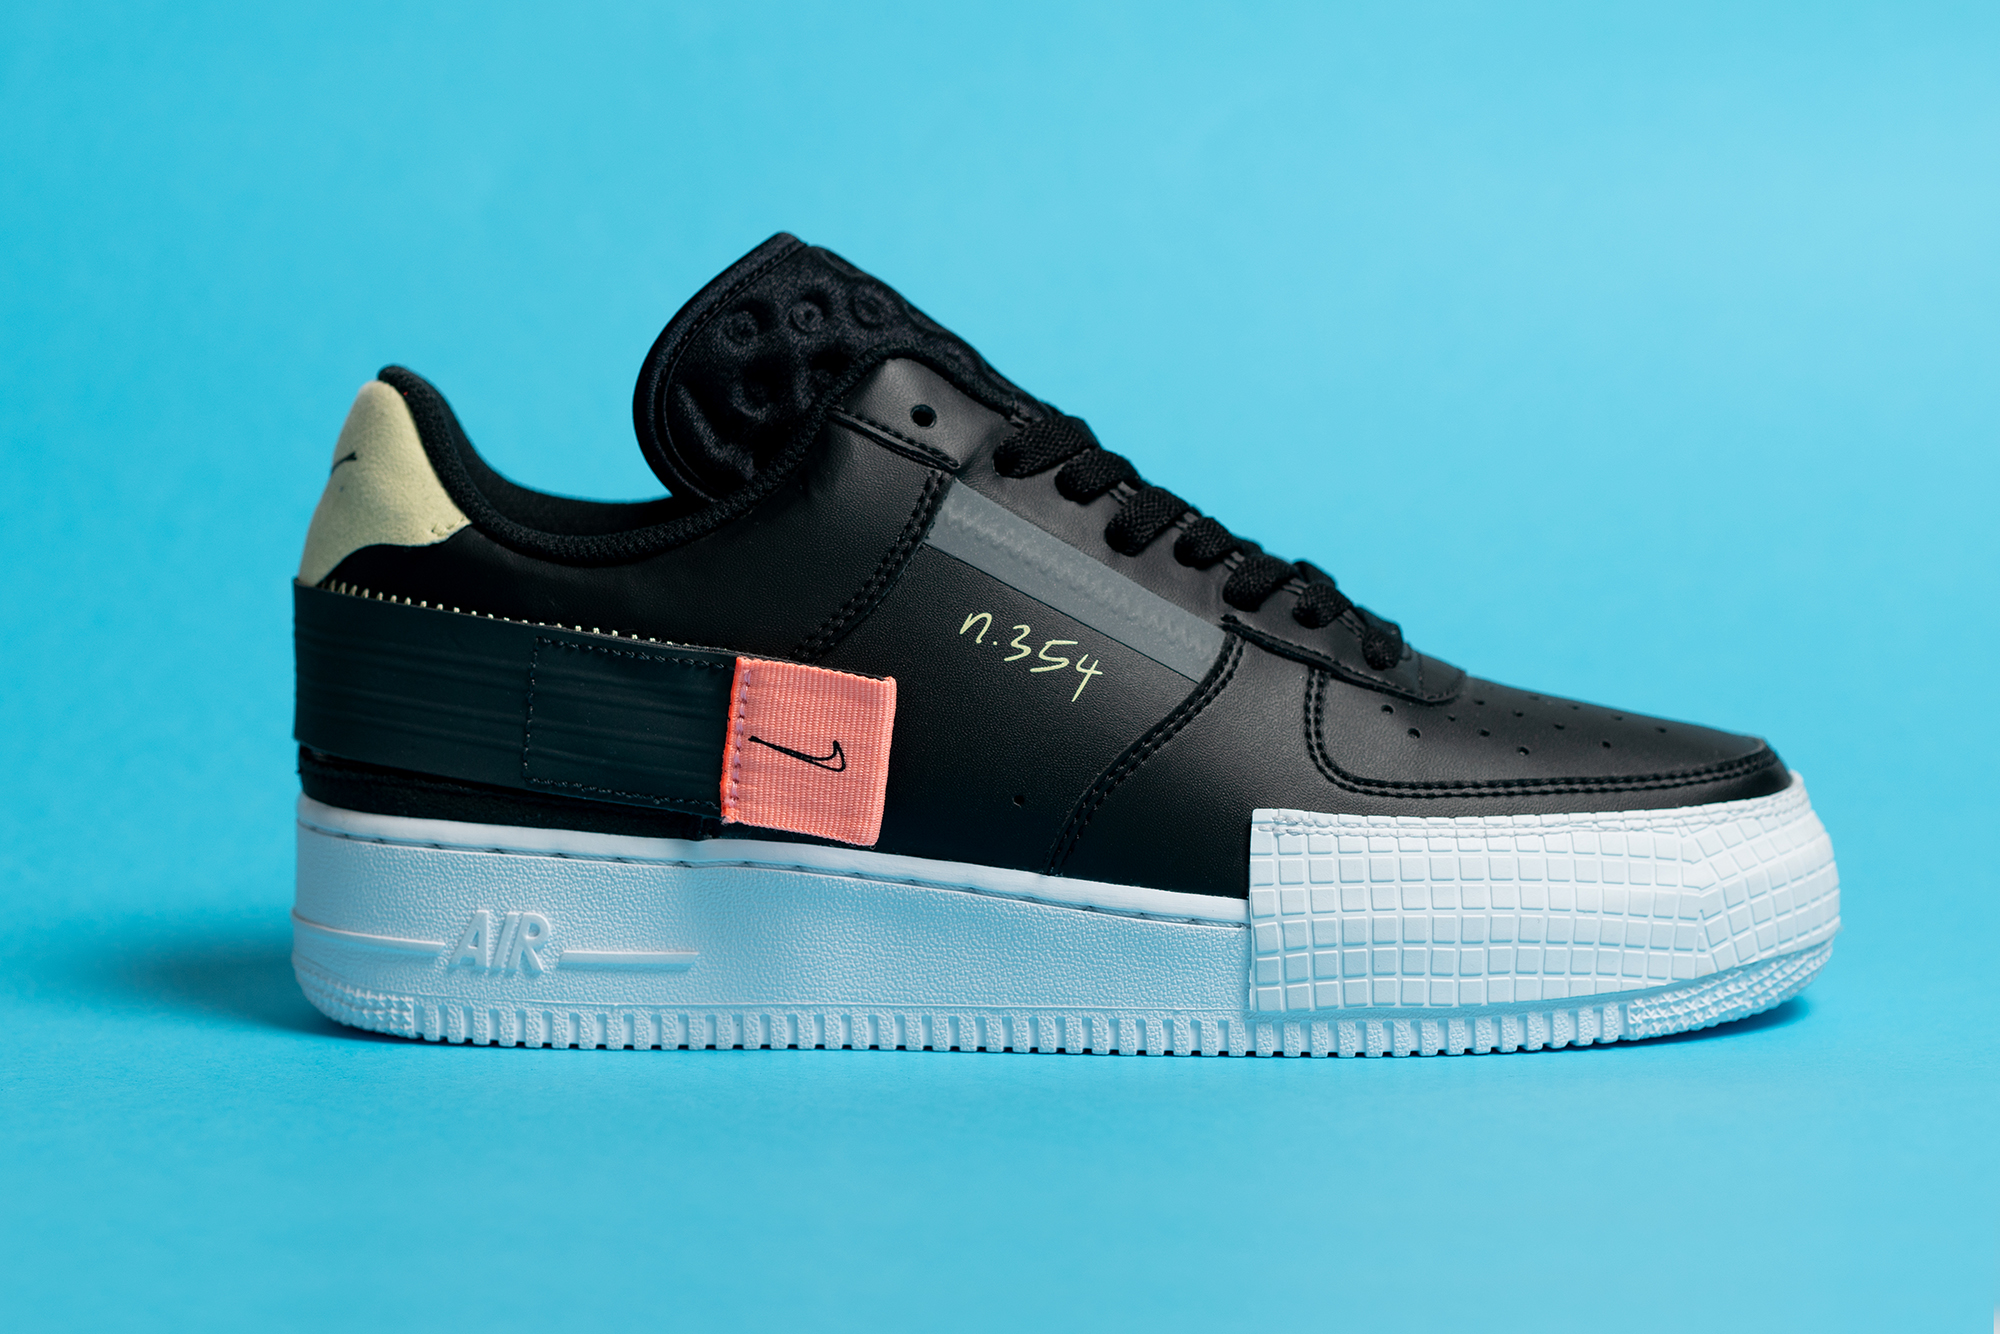 Nike N. 354 - Air Force 1 Type Black